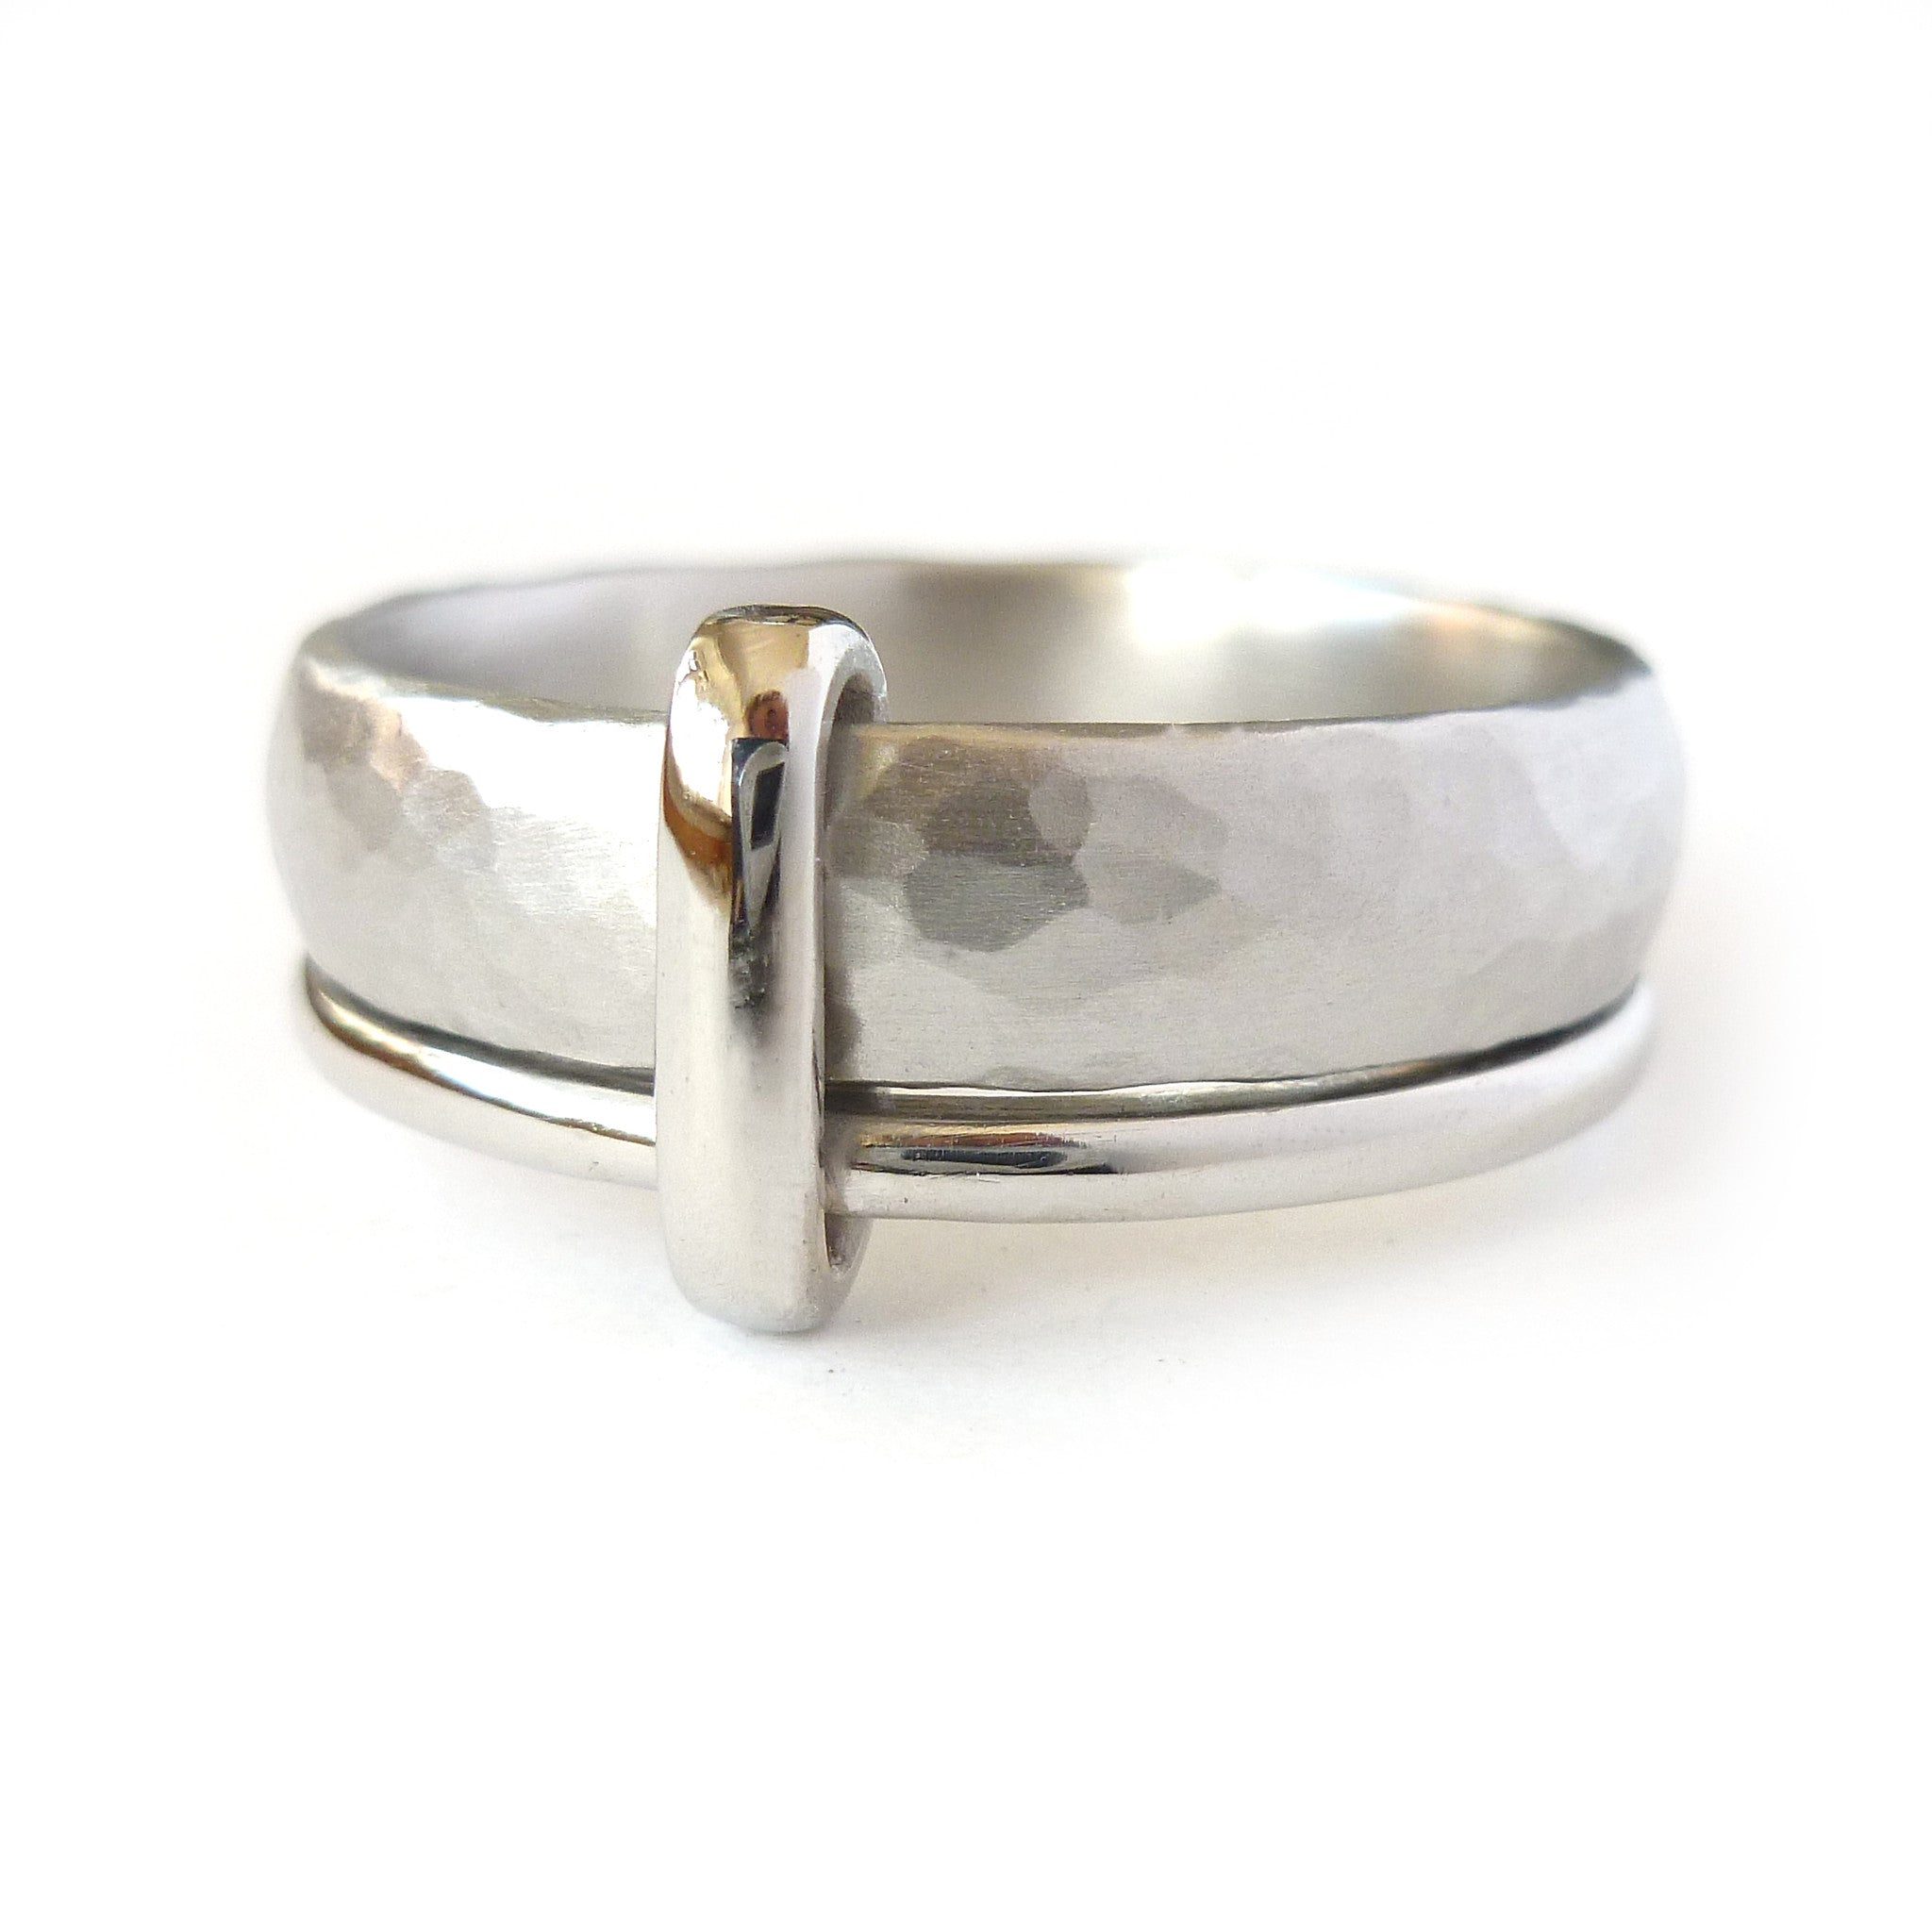 Contemporary Unique And Bespoke Two Band Platinum Ring With A Loop Sue Lane